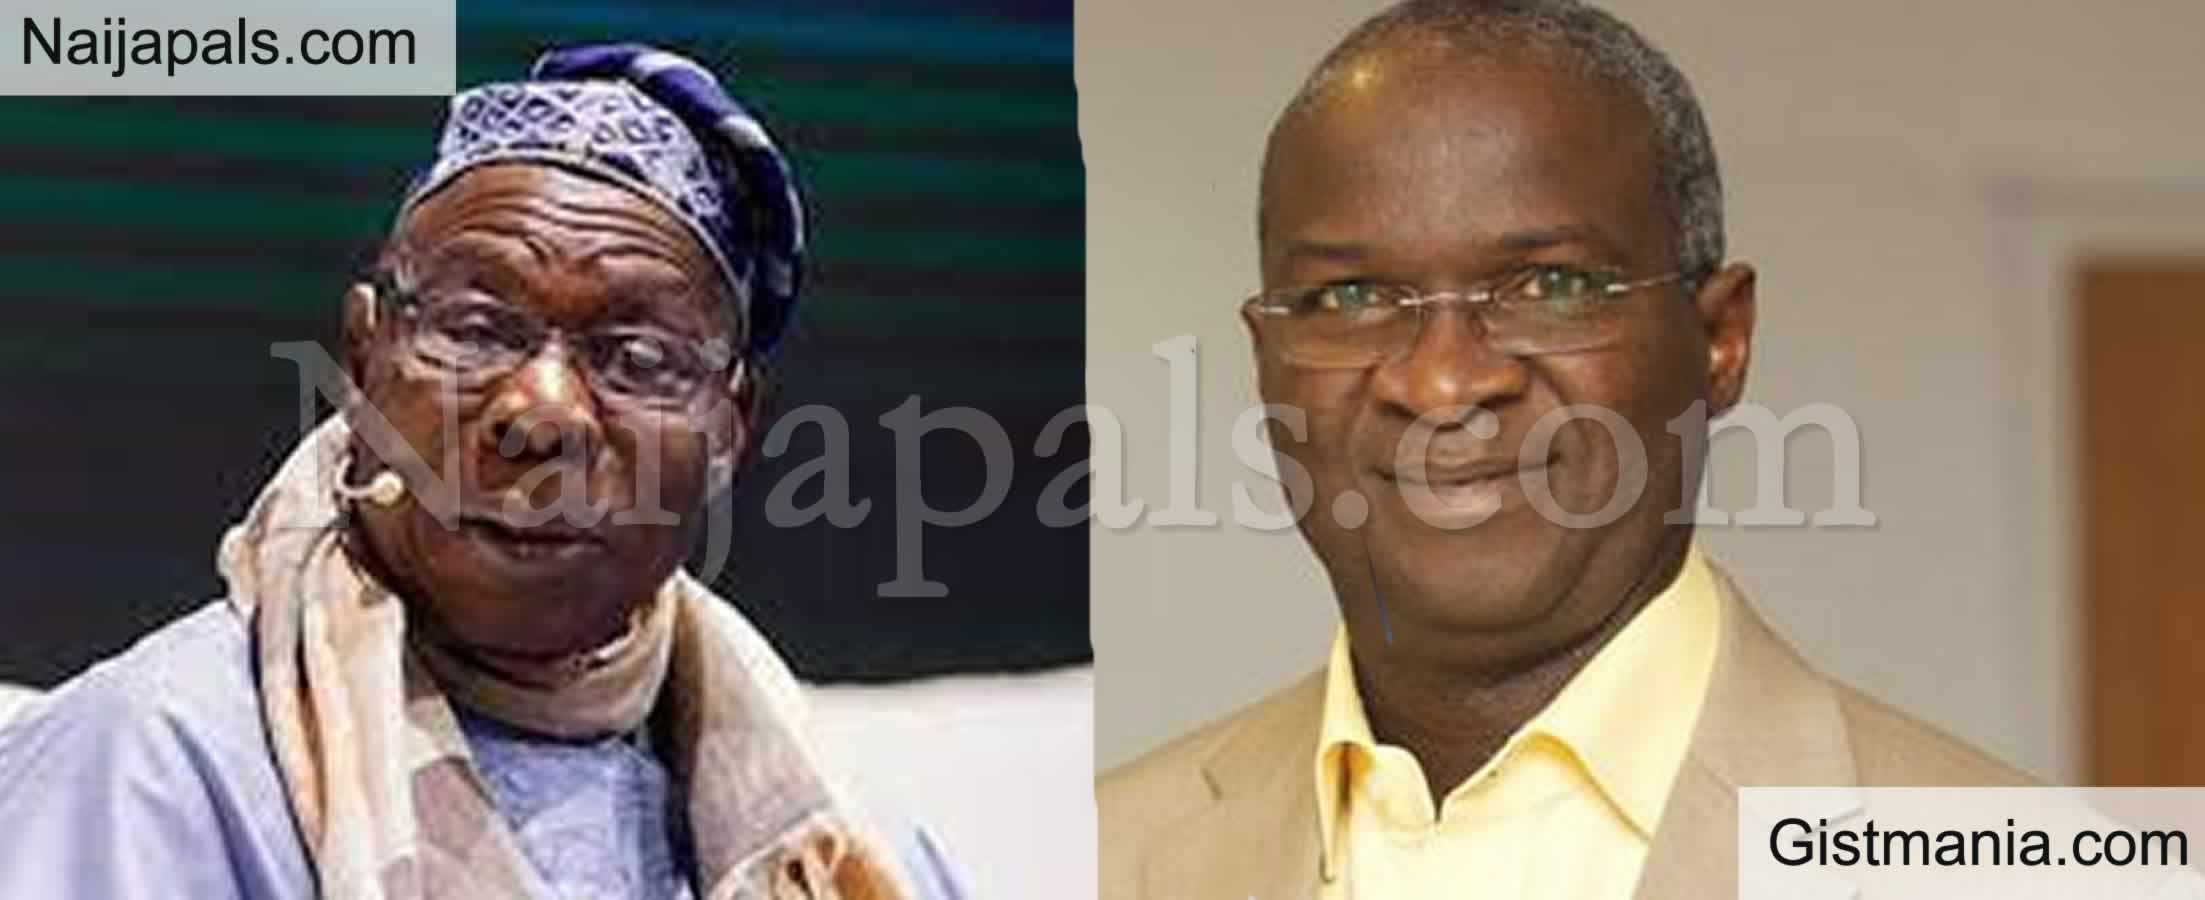 <img alt='.' class='lazyload' data-src='https://img.gistmania.com/emot/comment.gif' /> <b>$12bn Cash Payment To Service Foreign Debt In 2005, A Wrong Move - Fashola Condemns Obasanjo</b>